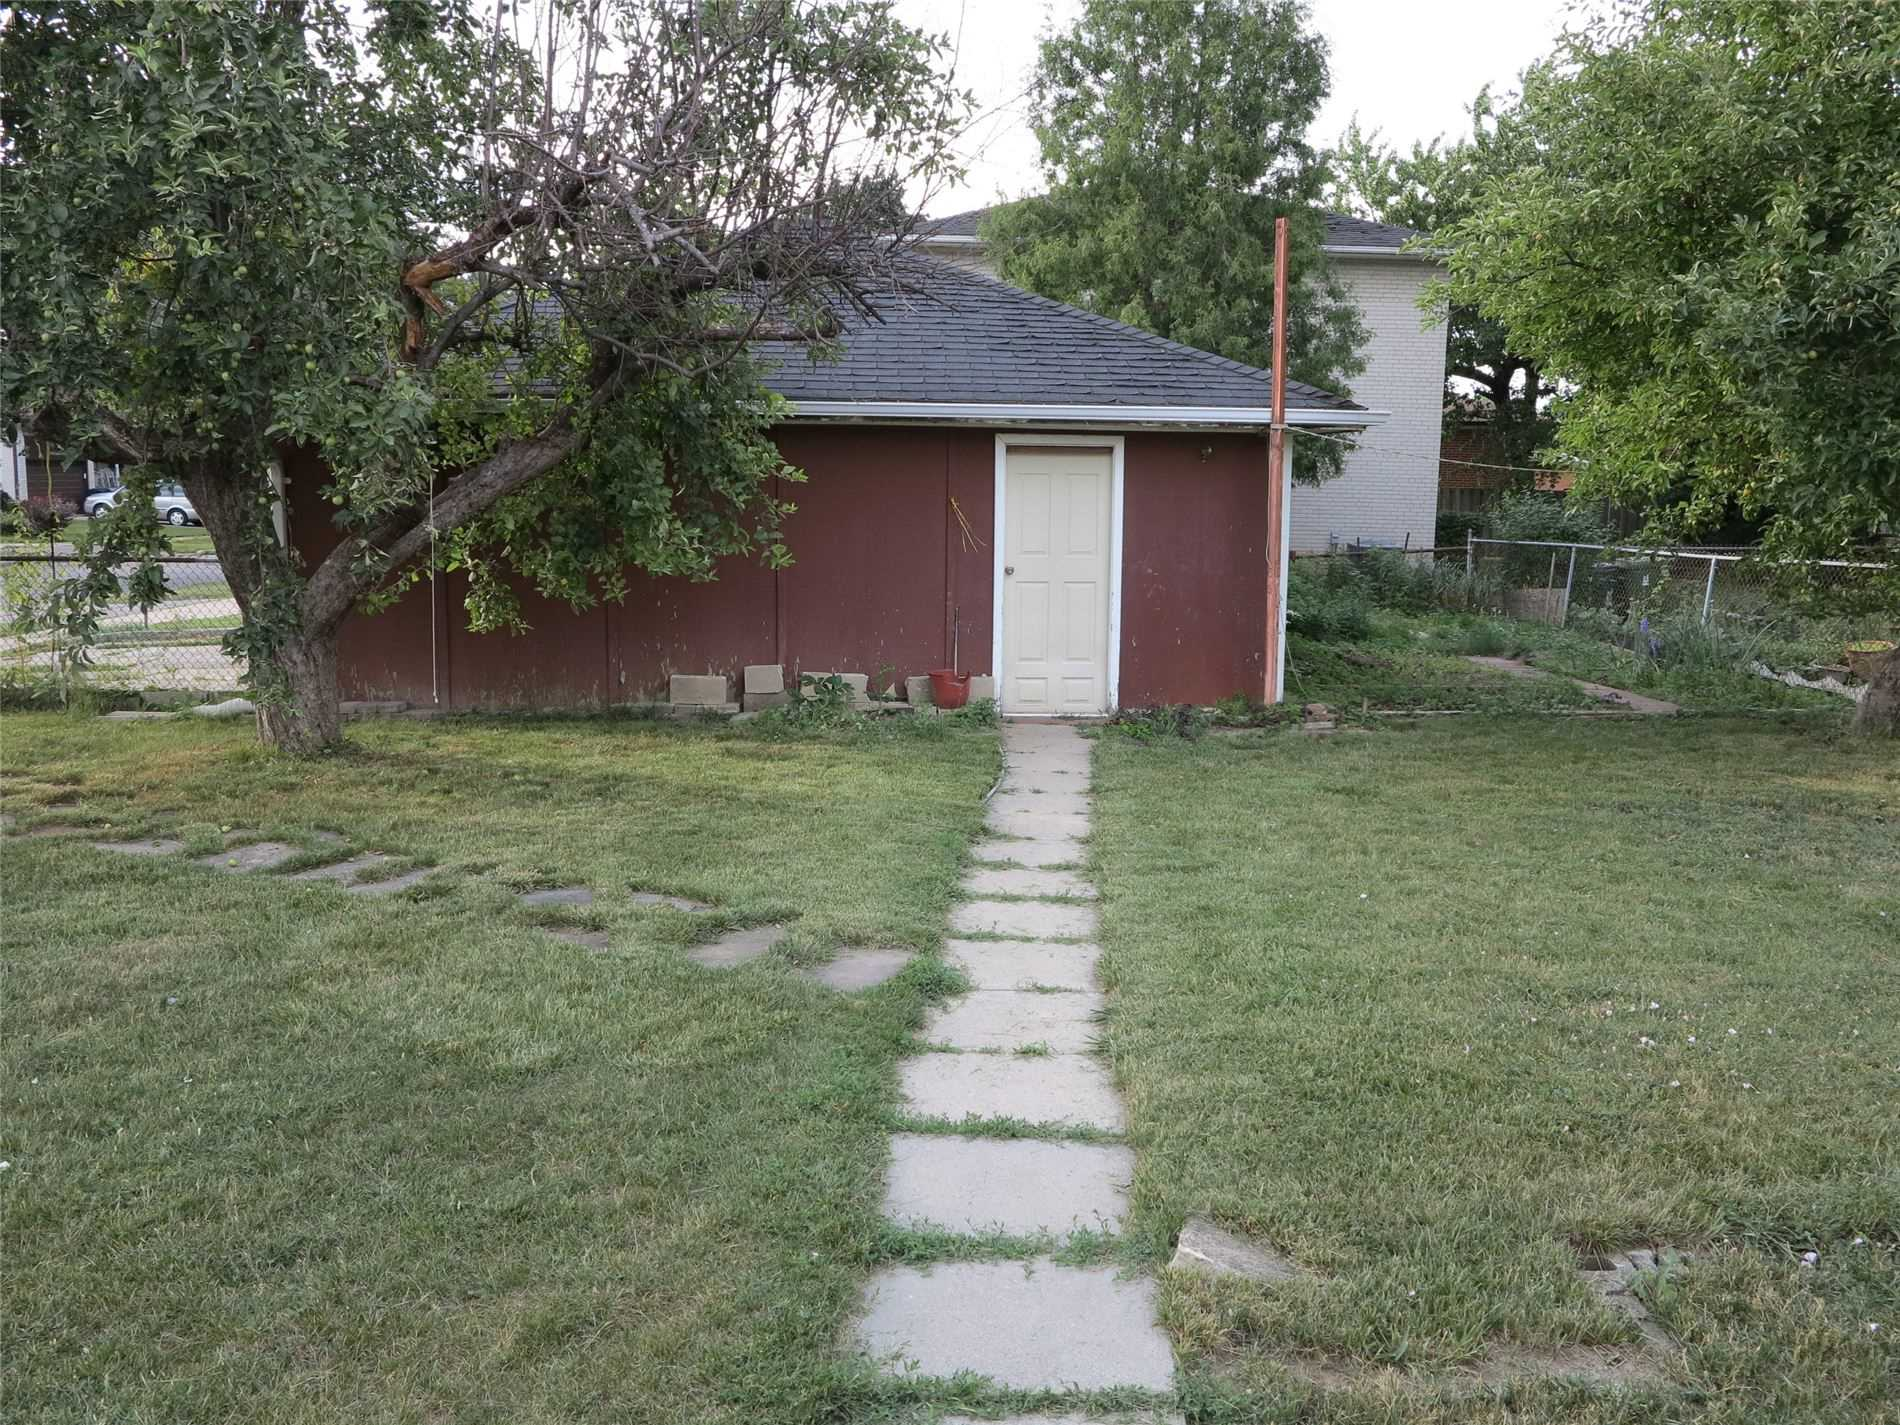 Image 20 of 30 showing inside of 3 Bedroom Detached Bungalow for Lease at 456 Drewry Ave, Toronto M2R2K7